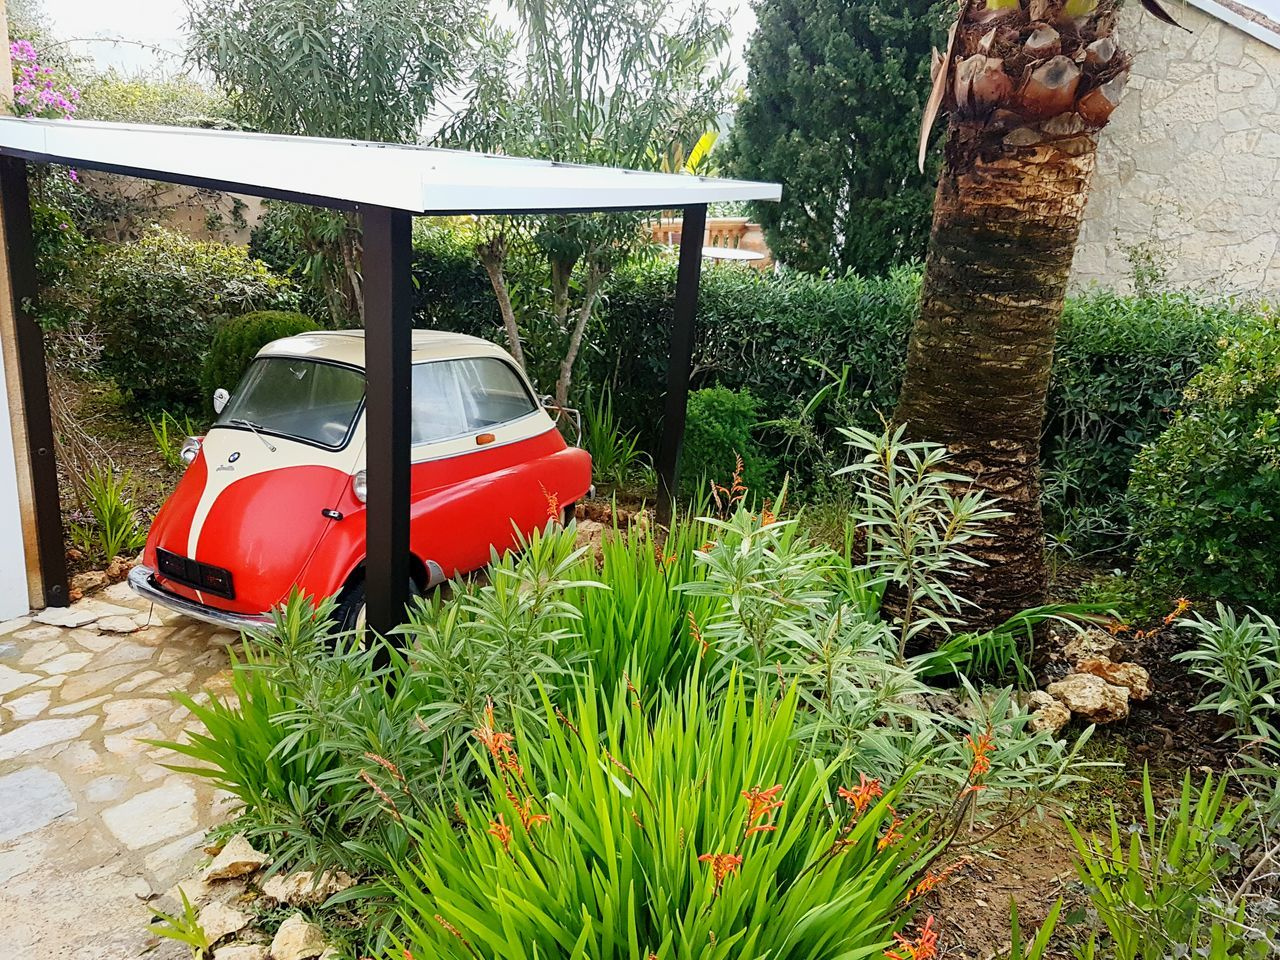 I saw it in a front yard. Somebody's Lieblingsteil Isetta Isetta BMW Car Old Car Oldtimer Front Yard No People Carport Walking Around Taking Pictures Day Outdoors Taking Photos Check This Out IMography 3XSPUnity Smartphonephotography GalaxyS7Edge S7edge Samsung Galaxy S7 Edge Redcar